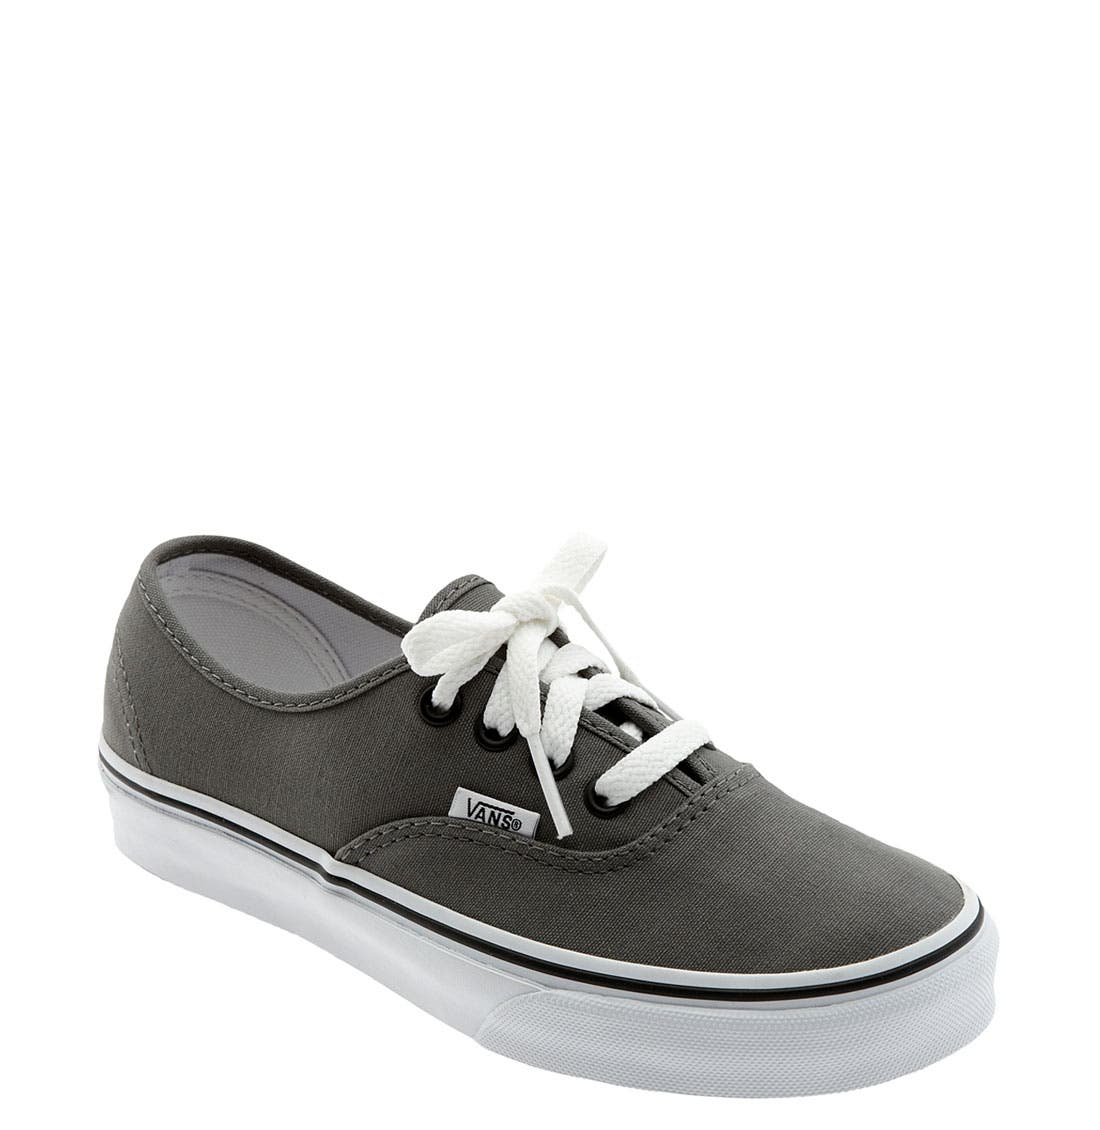 VANS, 'Authentic' Sneaker, Main thumbnail 1, color, PEWTER/BLACK